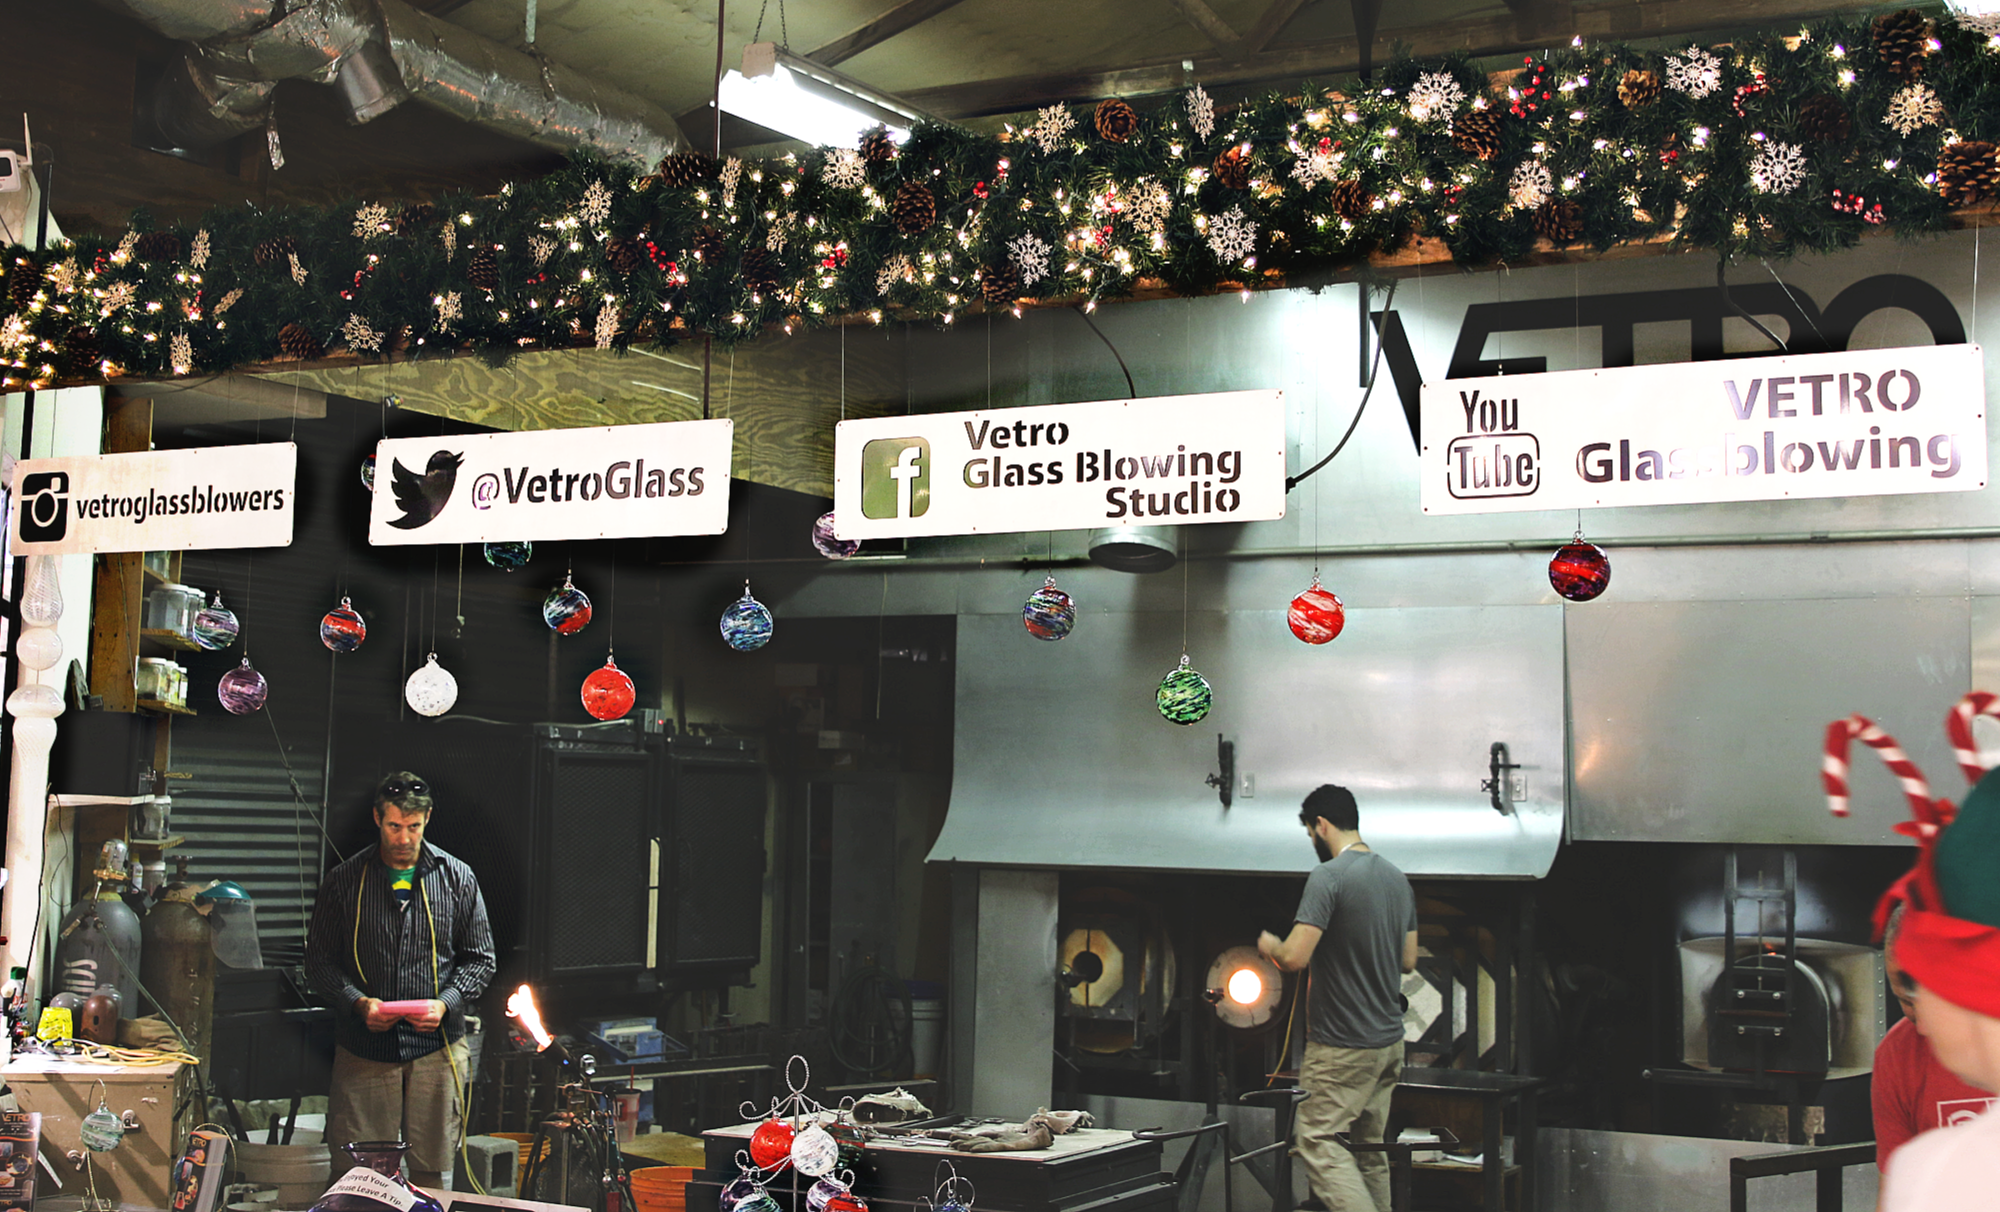 Vetro Glassblowing Studio